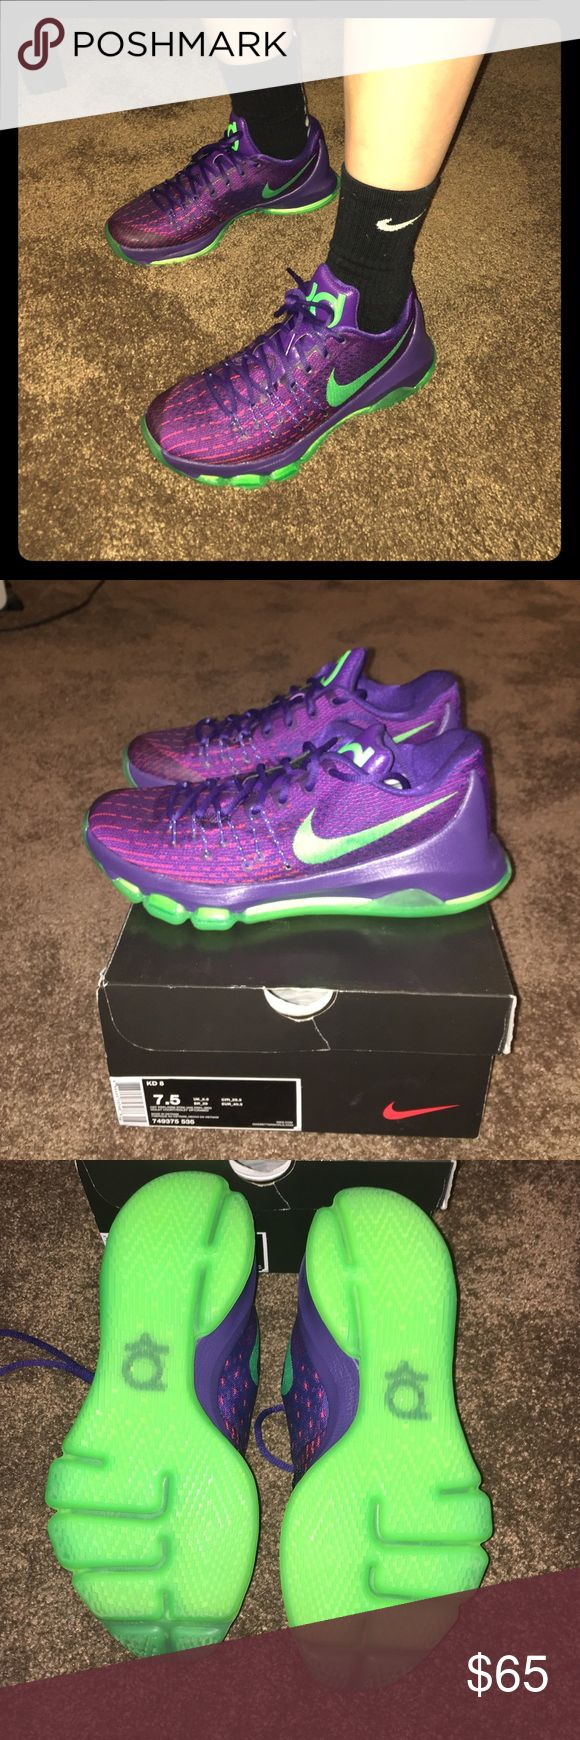 Nike kd's basketball shoes Their in great shape! Worn only a few times! Still smells new. Shoes run a bit small but if your a Women size 8.5 they'll fit perfect! Or men's 7.5 men's 7 would fit too. Men's 7 would fit a bit better in these. Nike Shoes Athletic Shoes